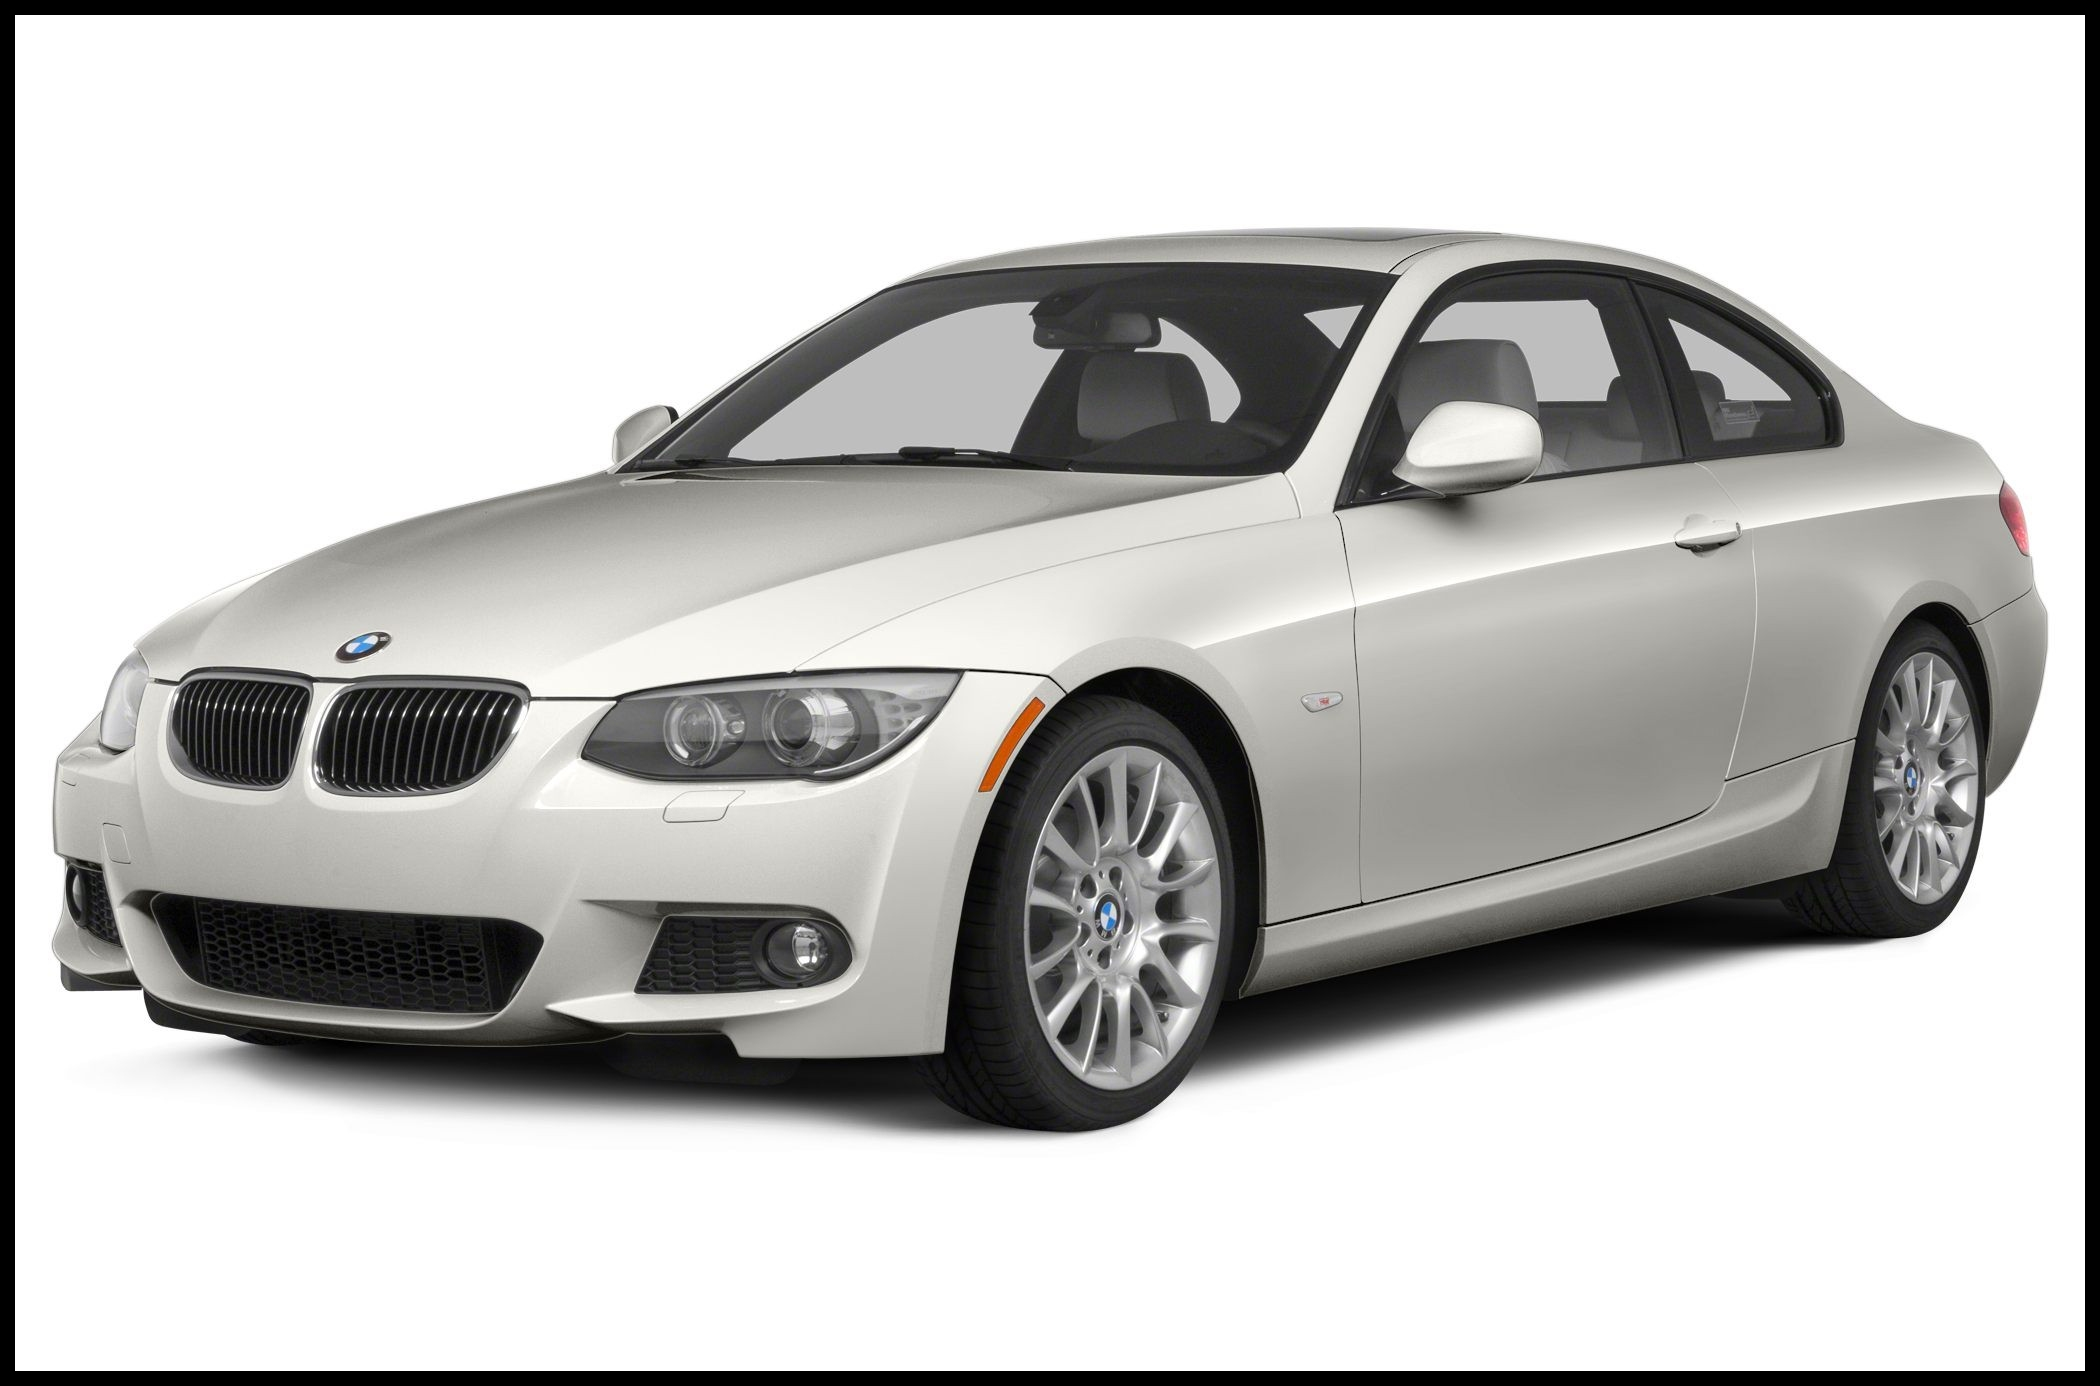 2011 Bmw 335i Xdrive Coupe for Sale Lovely 2013 Bmw 335 New Car Test Drive